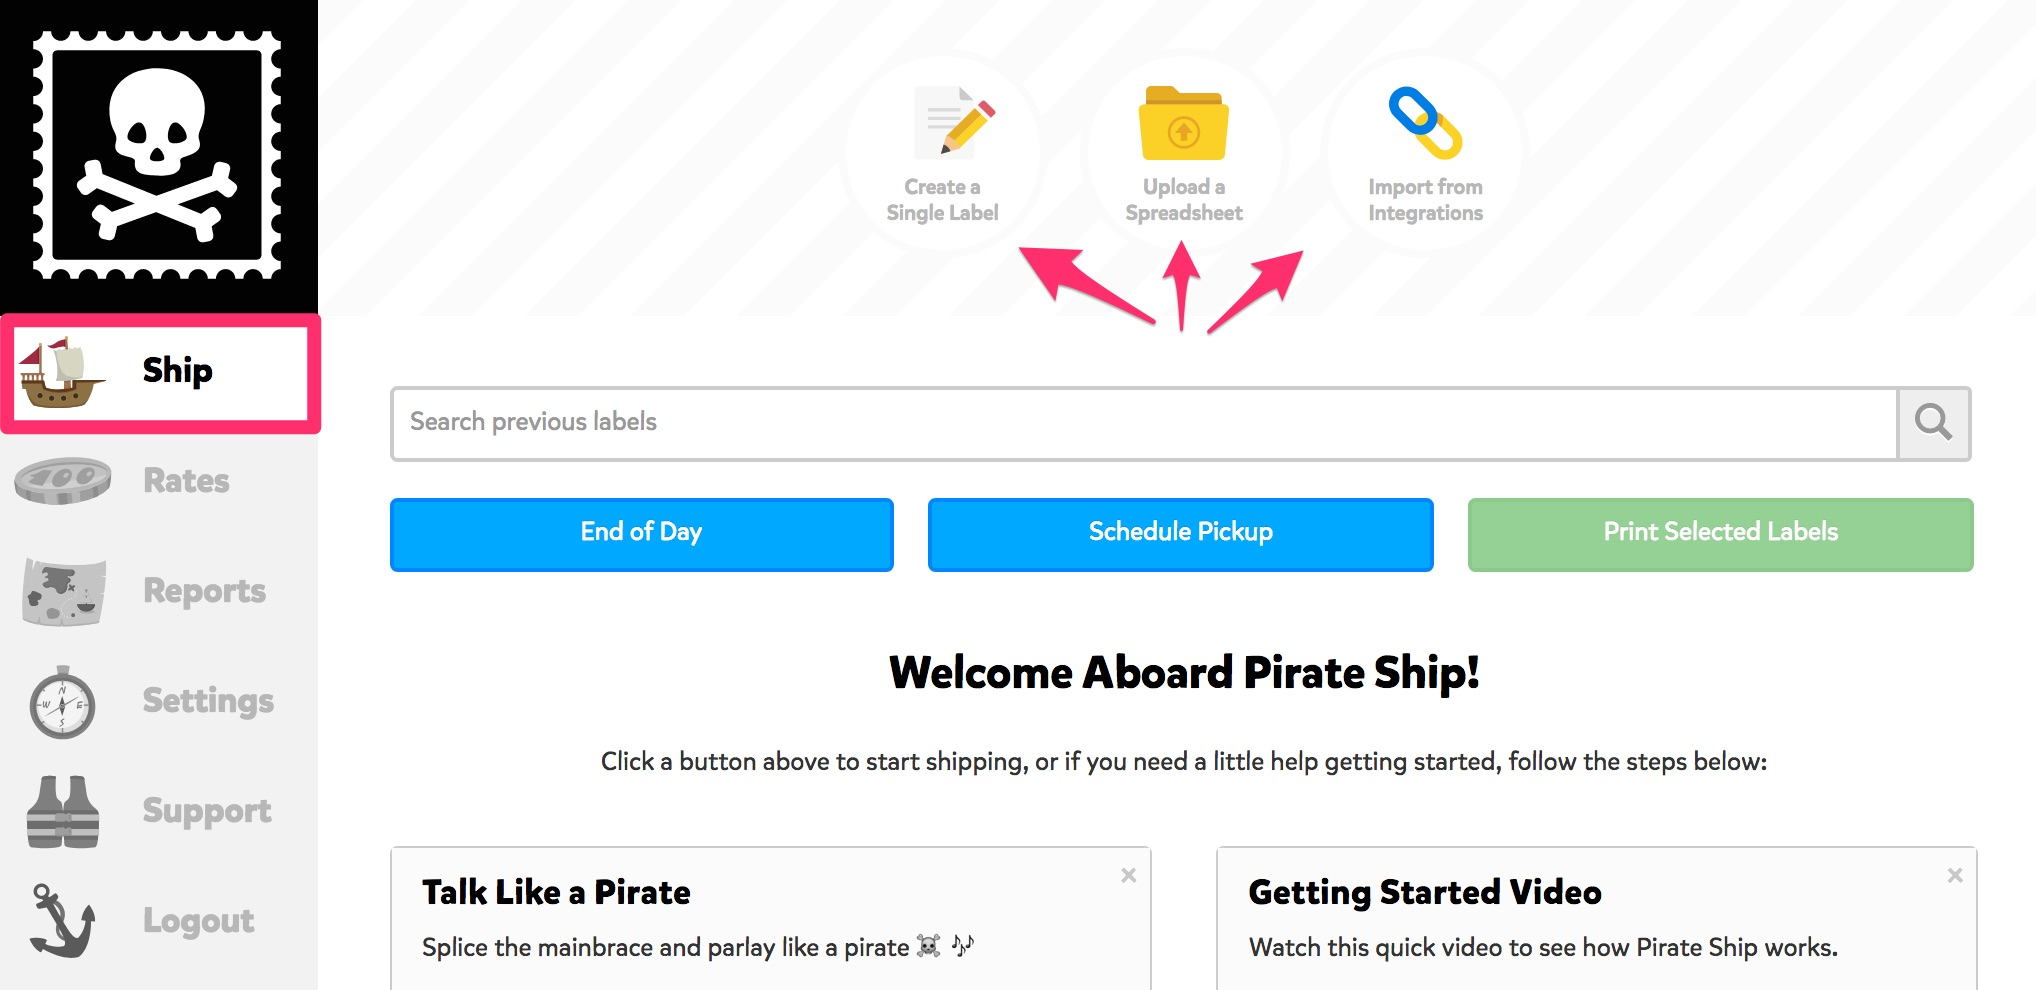 A screenshot showing the main Ship Page on Pirate Ship. Towards the left on the left hand menu, the first button that says 'Ship' is highlighted. Towards the top center of the page, there are 3 buttons with arrows pointing at them. From right to left, they read, 'Create a Single Label,' 'Upload a Spreadsheet,' and 'Import from Integrations.'